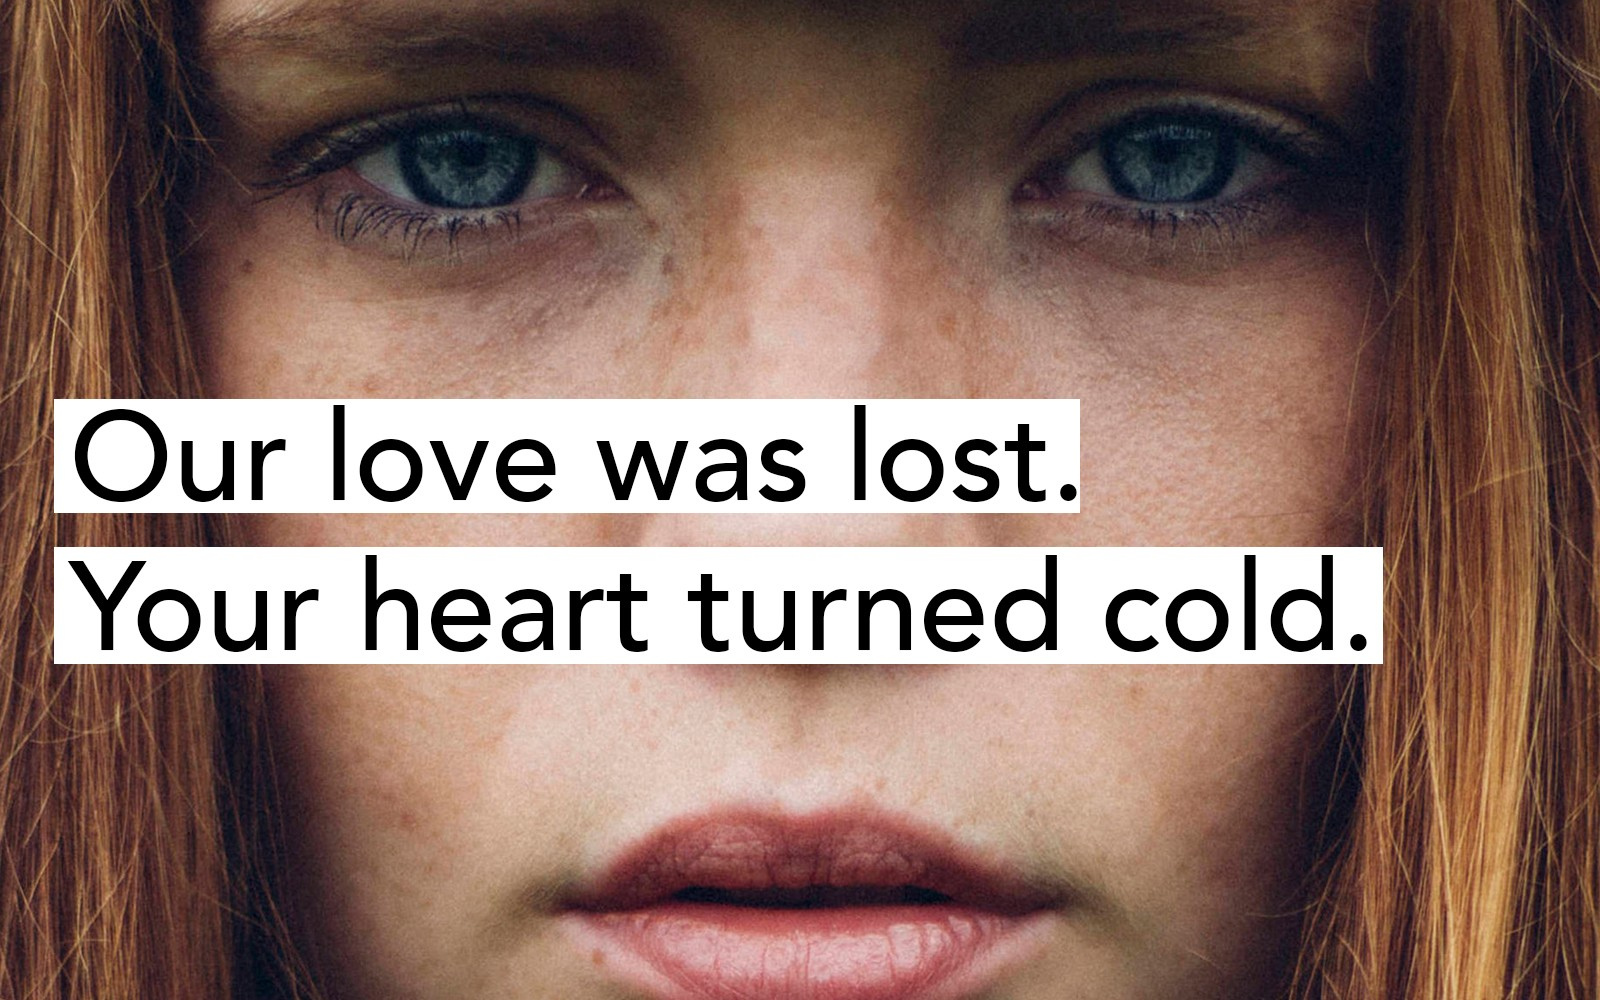 33 Of The Most Effectively Sad Emo Lyrics Ever Sung